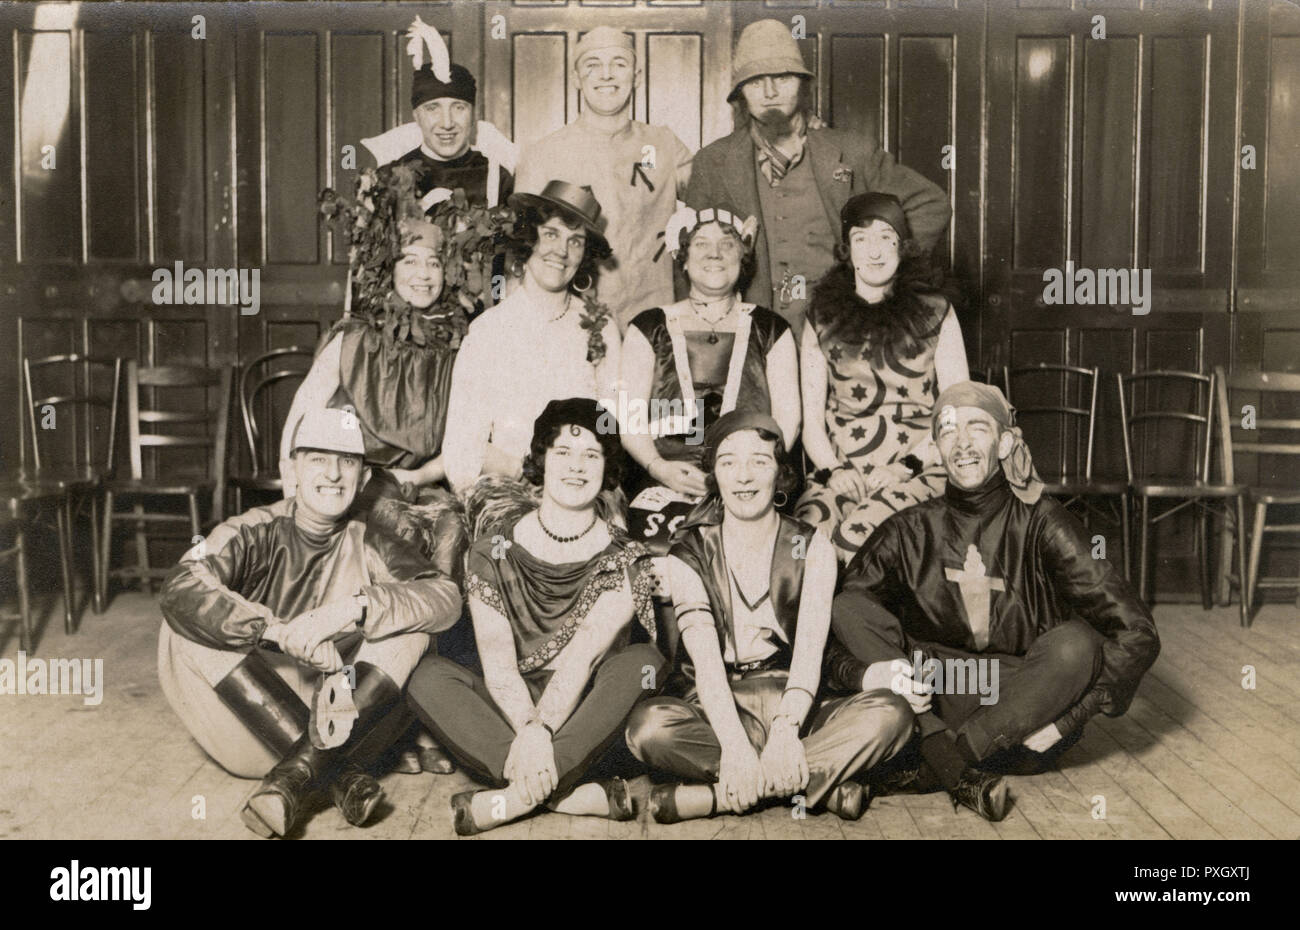 A jolly group of party revellers in various forms of fancy dress including a jockey, a gypsy (a favourite them of the 1920s) and a convict.       Date: c.1927 - Stock Image